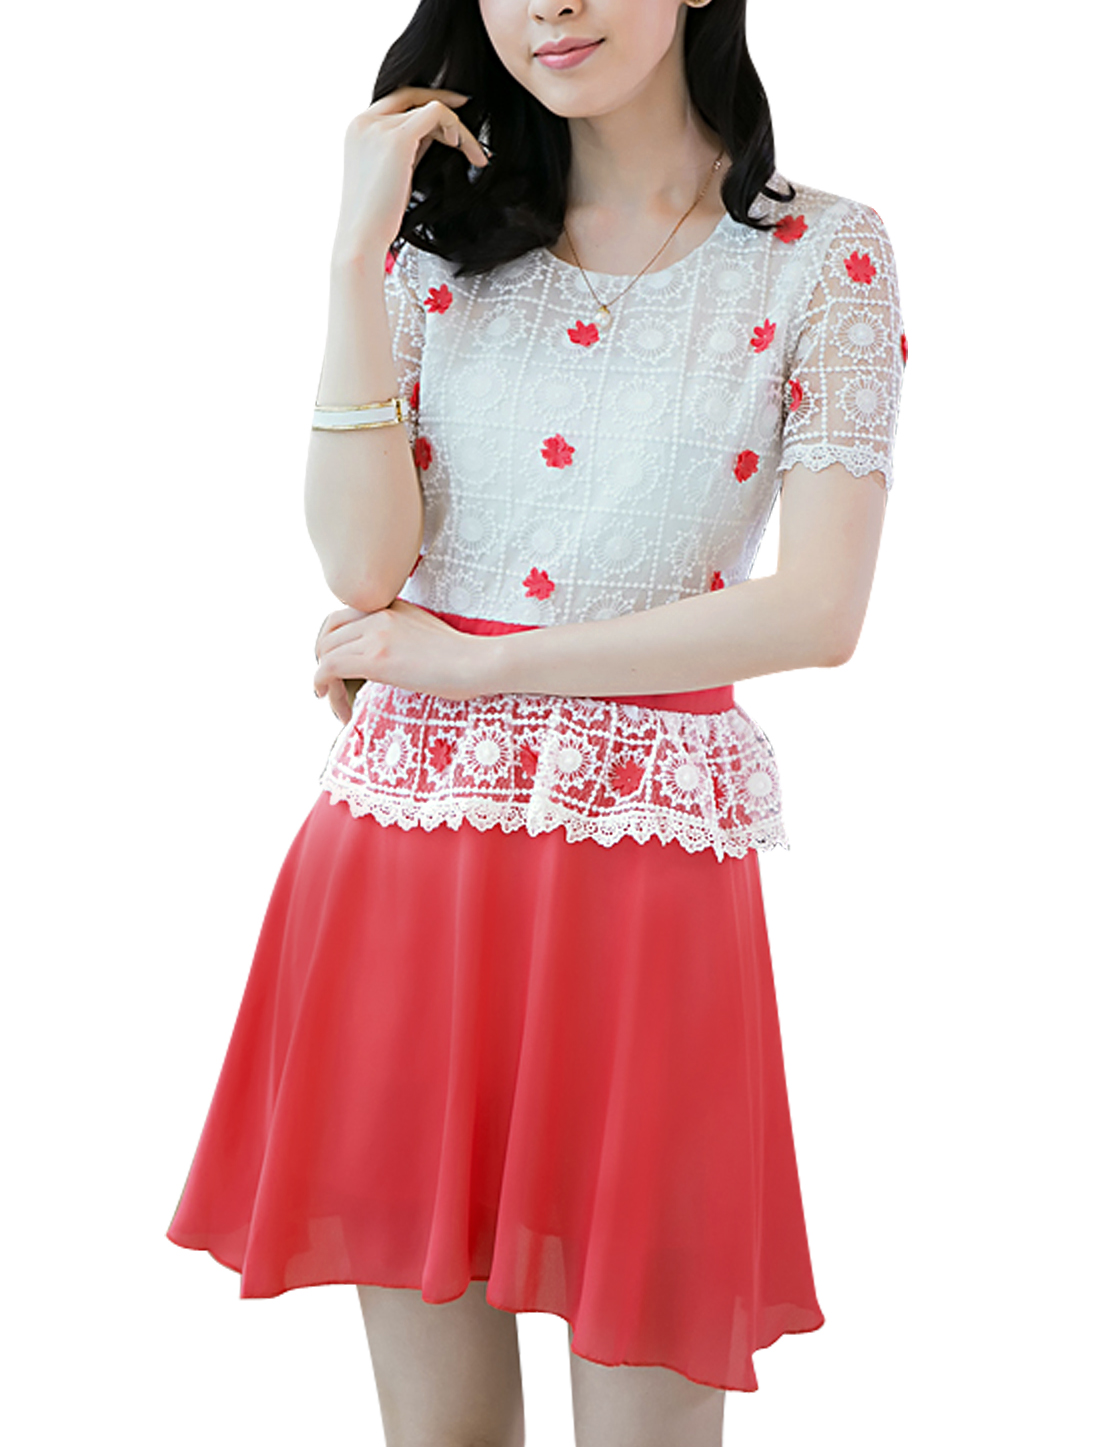 Ladies Hidden Zipper Lace Panel Flower Design Peplum Dress Watermelon Pink White S